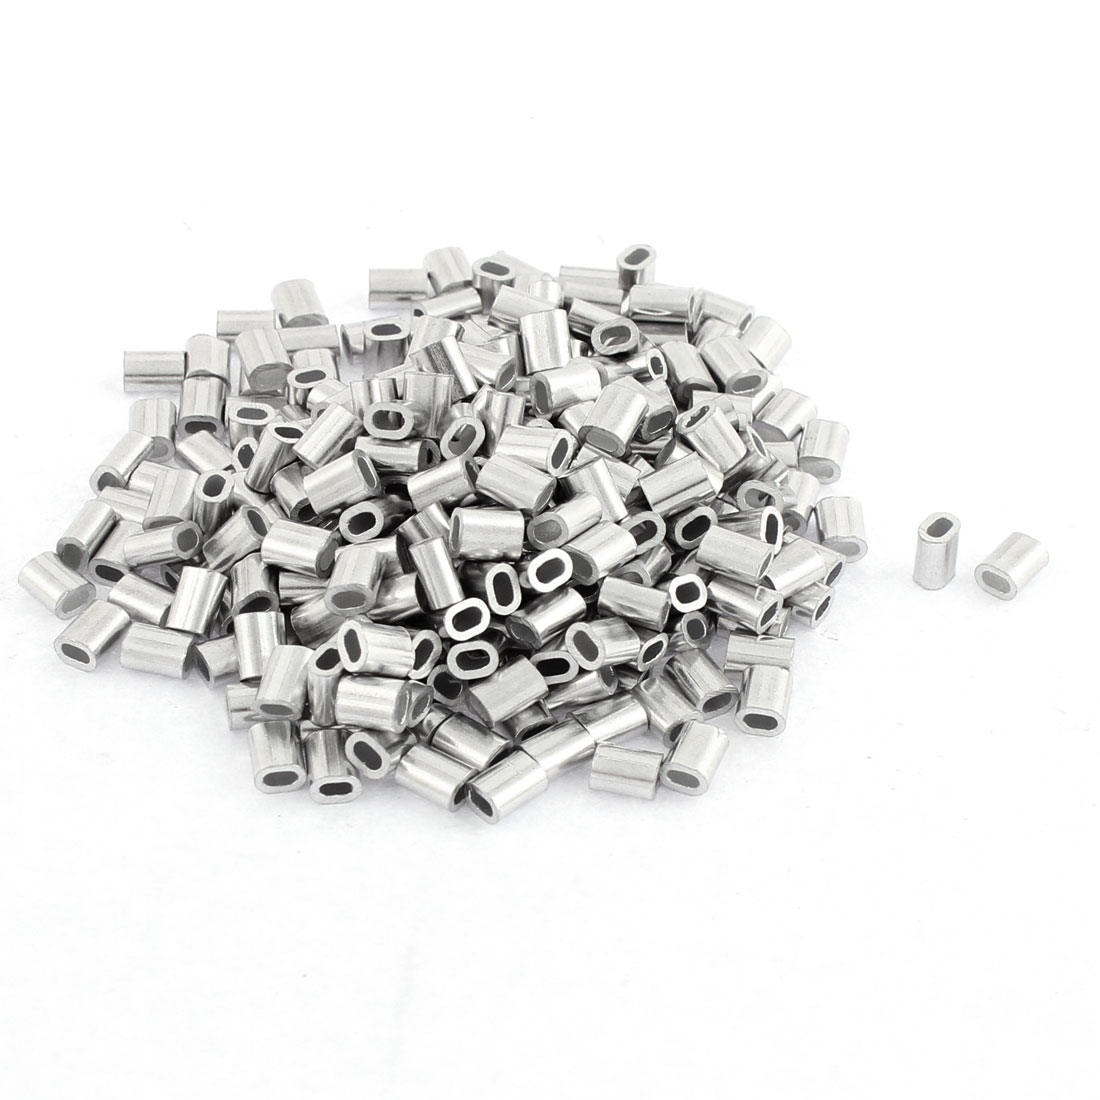 300pcs Oval Aluminum Sleeves Clamps for 1mm Wire Rope Swage Clip